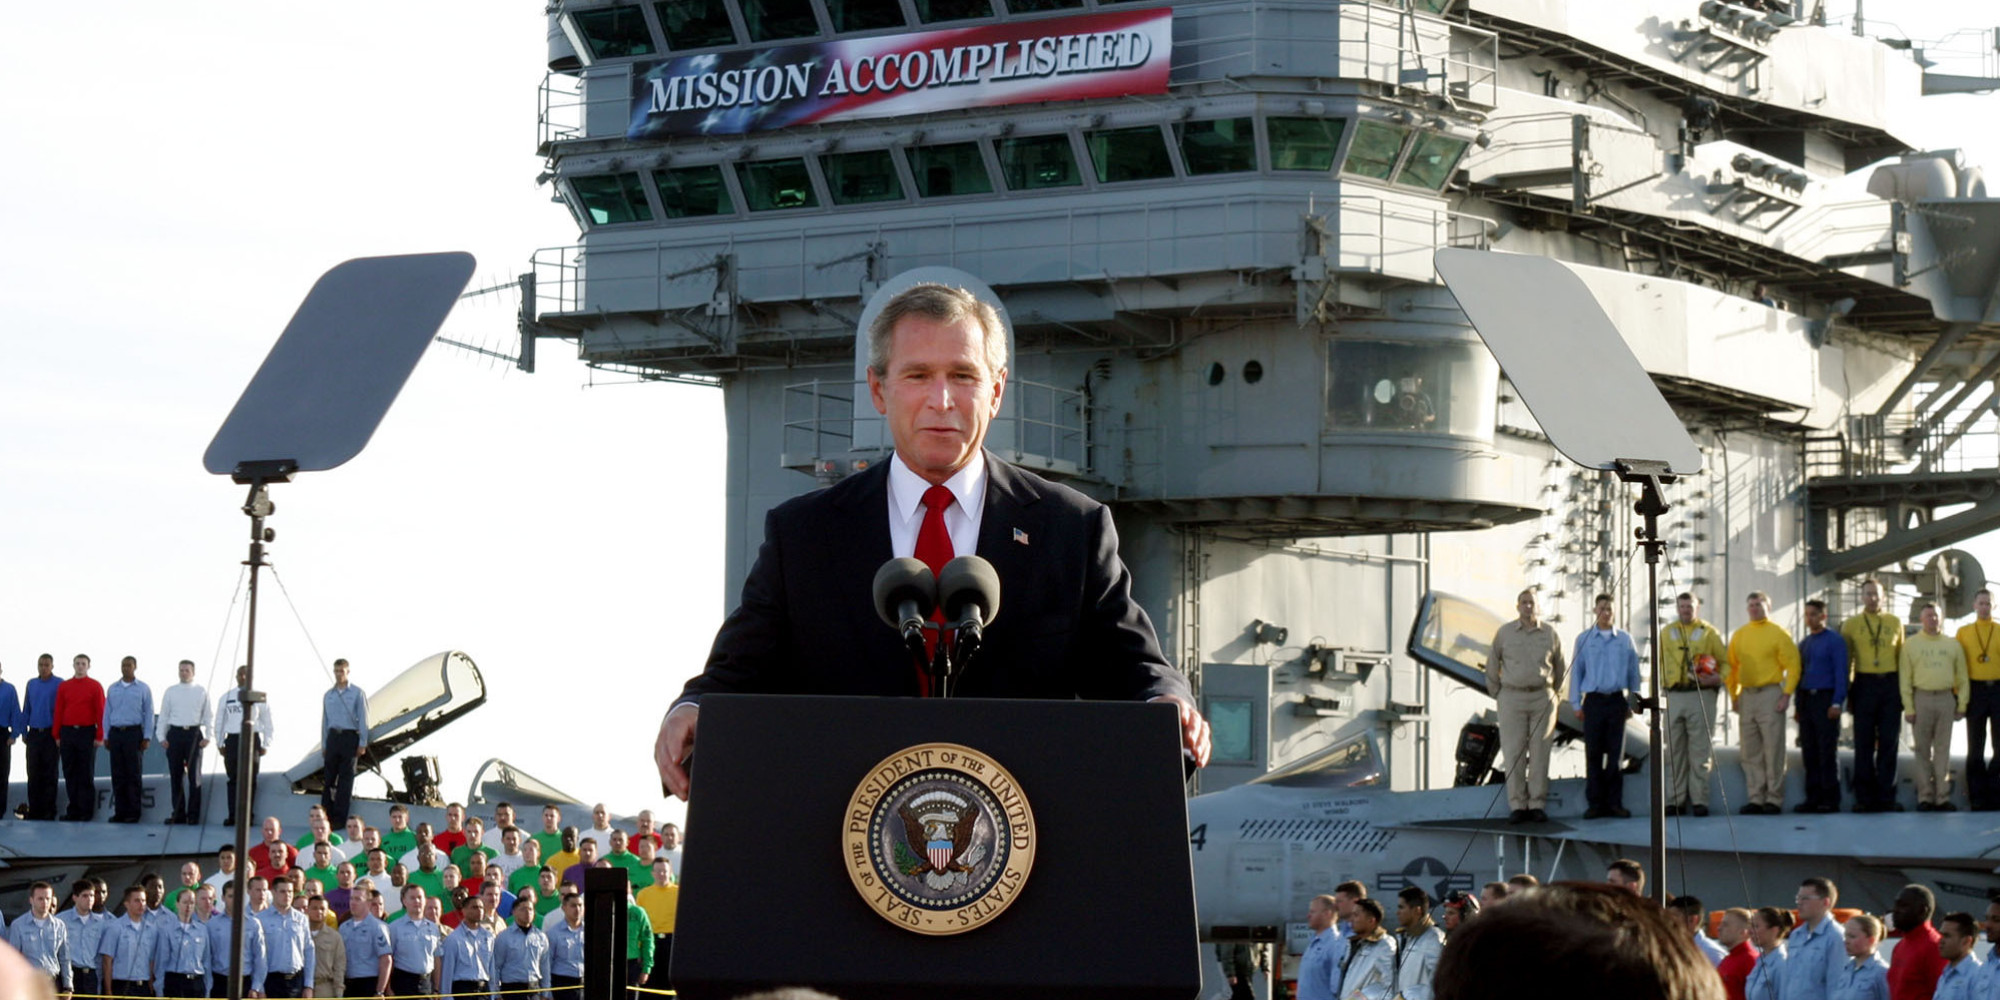 https://i0.wp.com/i.huffpost.com/gen/2903624/images/o-BUSH-MISSION-ACCOMPLISHED-facebook.jpg